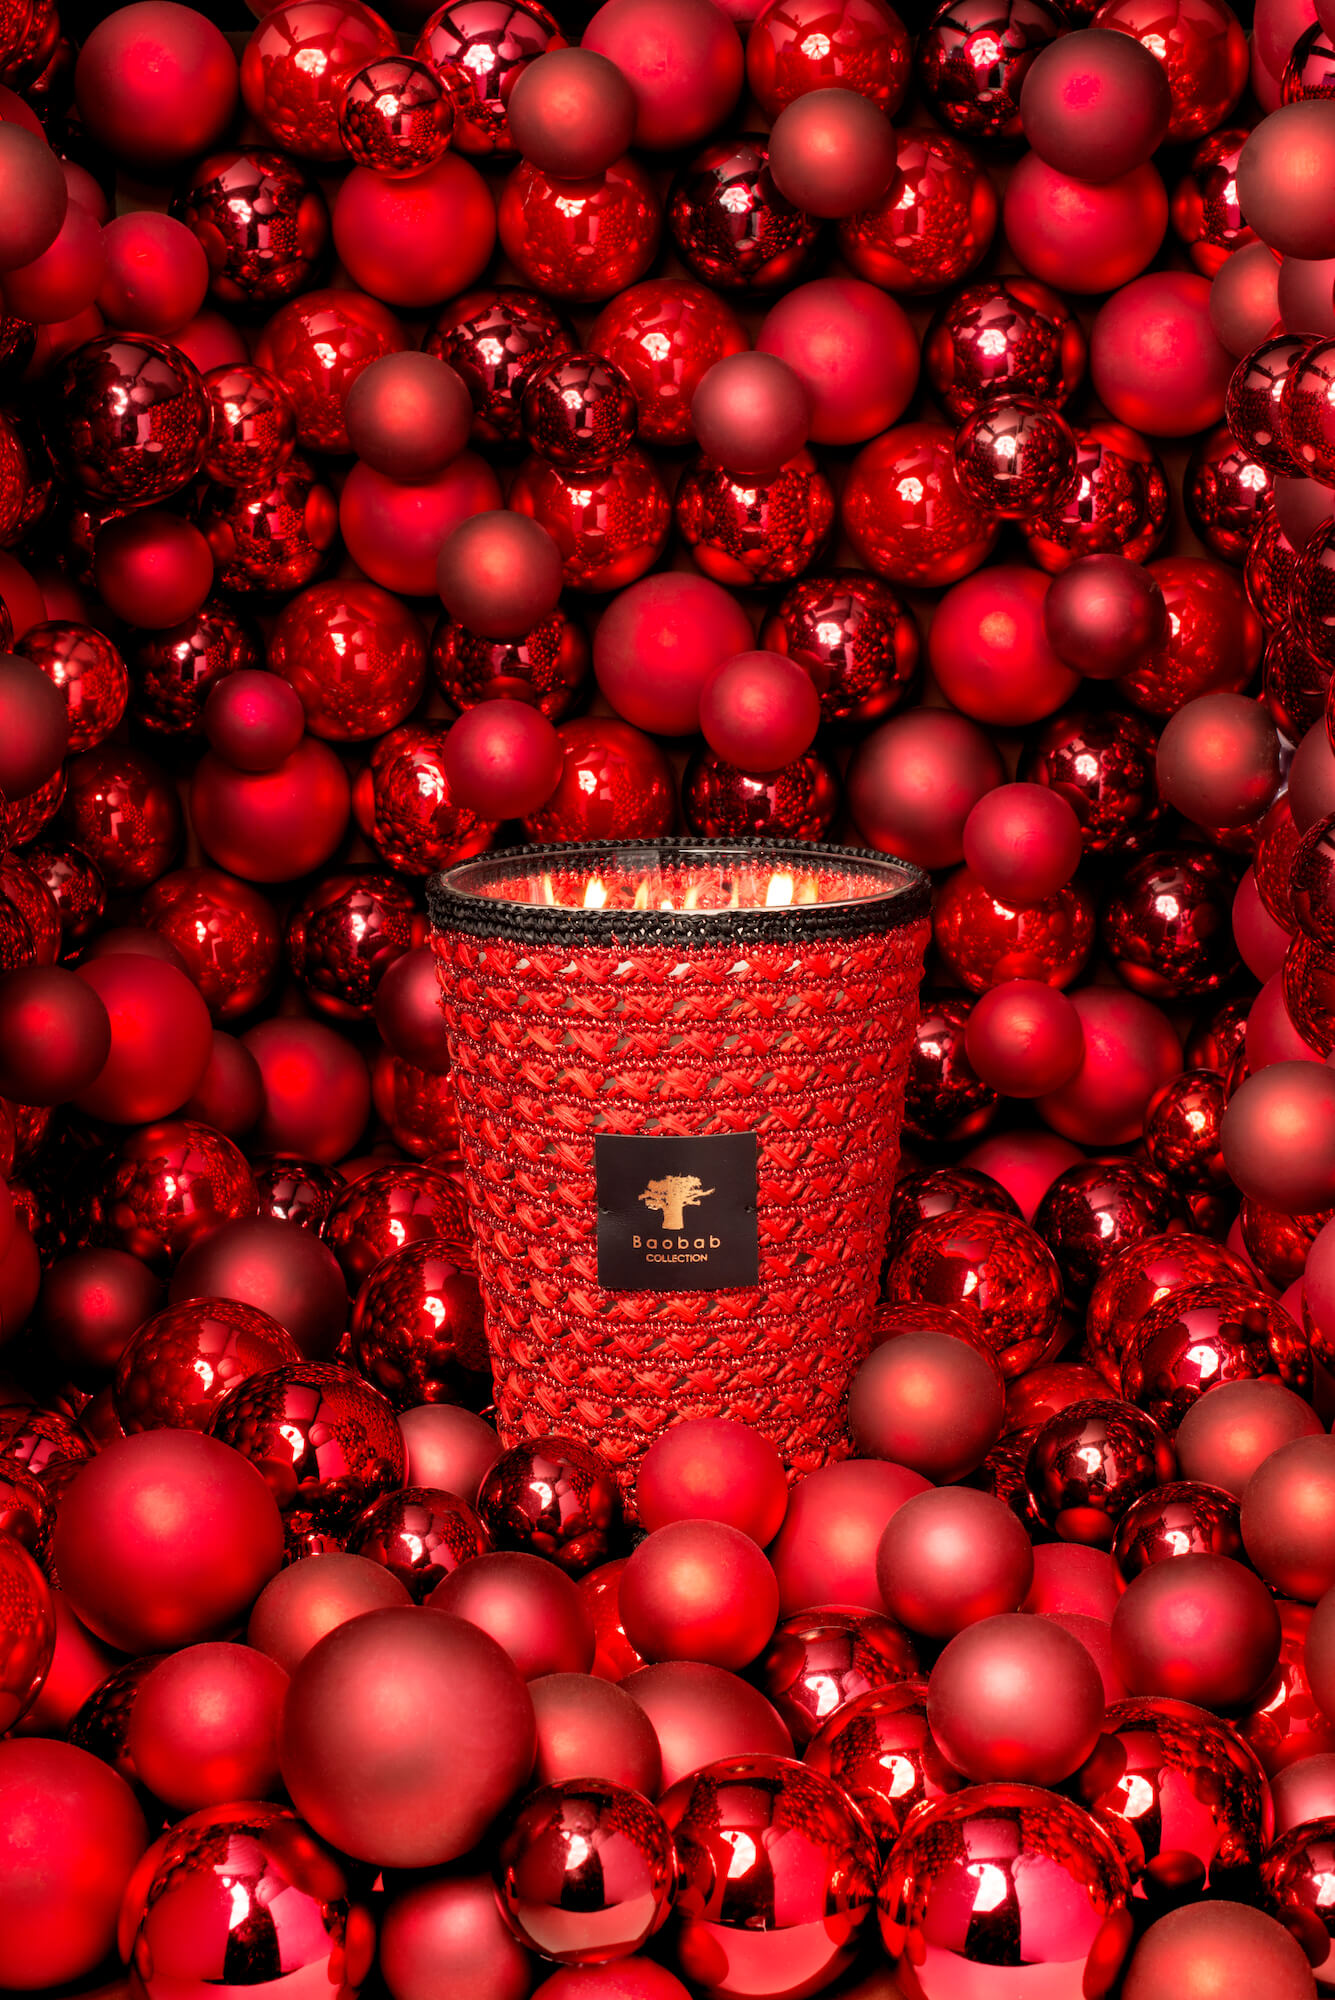 baobab_collection_scented_candles_FOTY_holiday_seasons